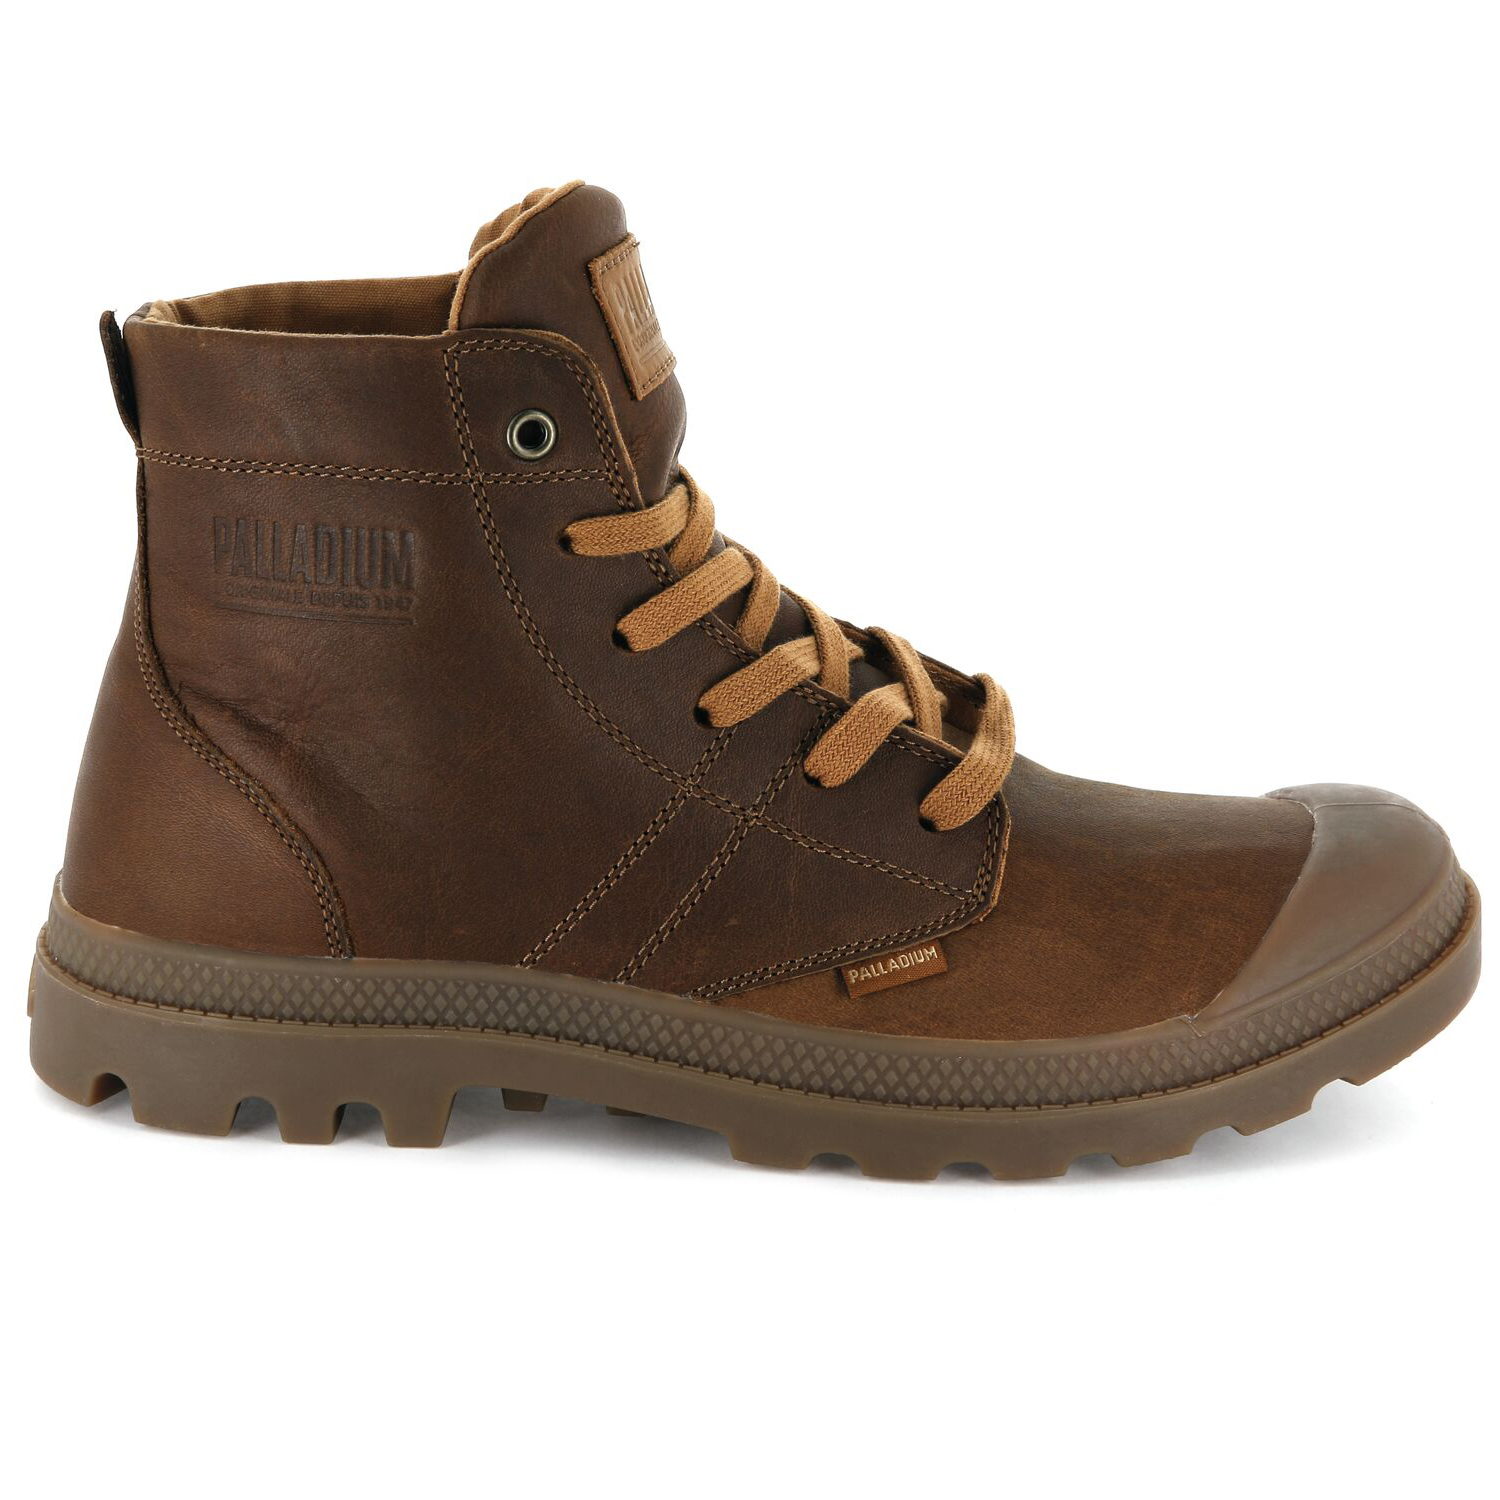 Palladium-Mens-Pallabrousse-Leather-Lace-Up-Boots-Walking-Chukka-Ankle-Shoes thumbnail 13